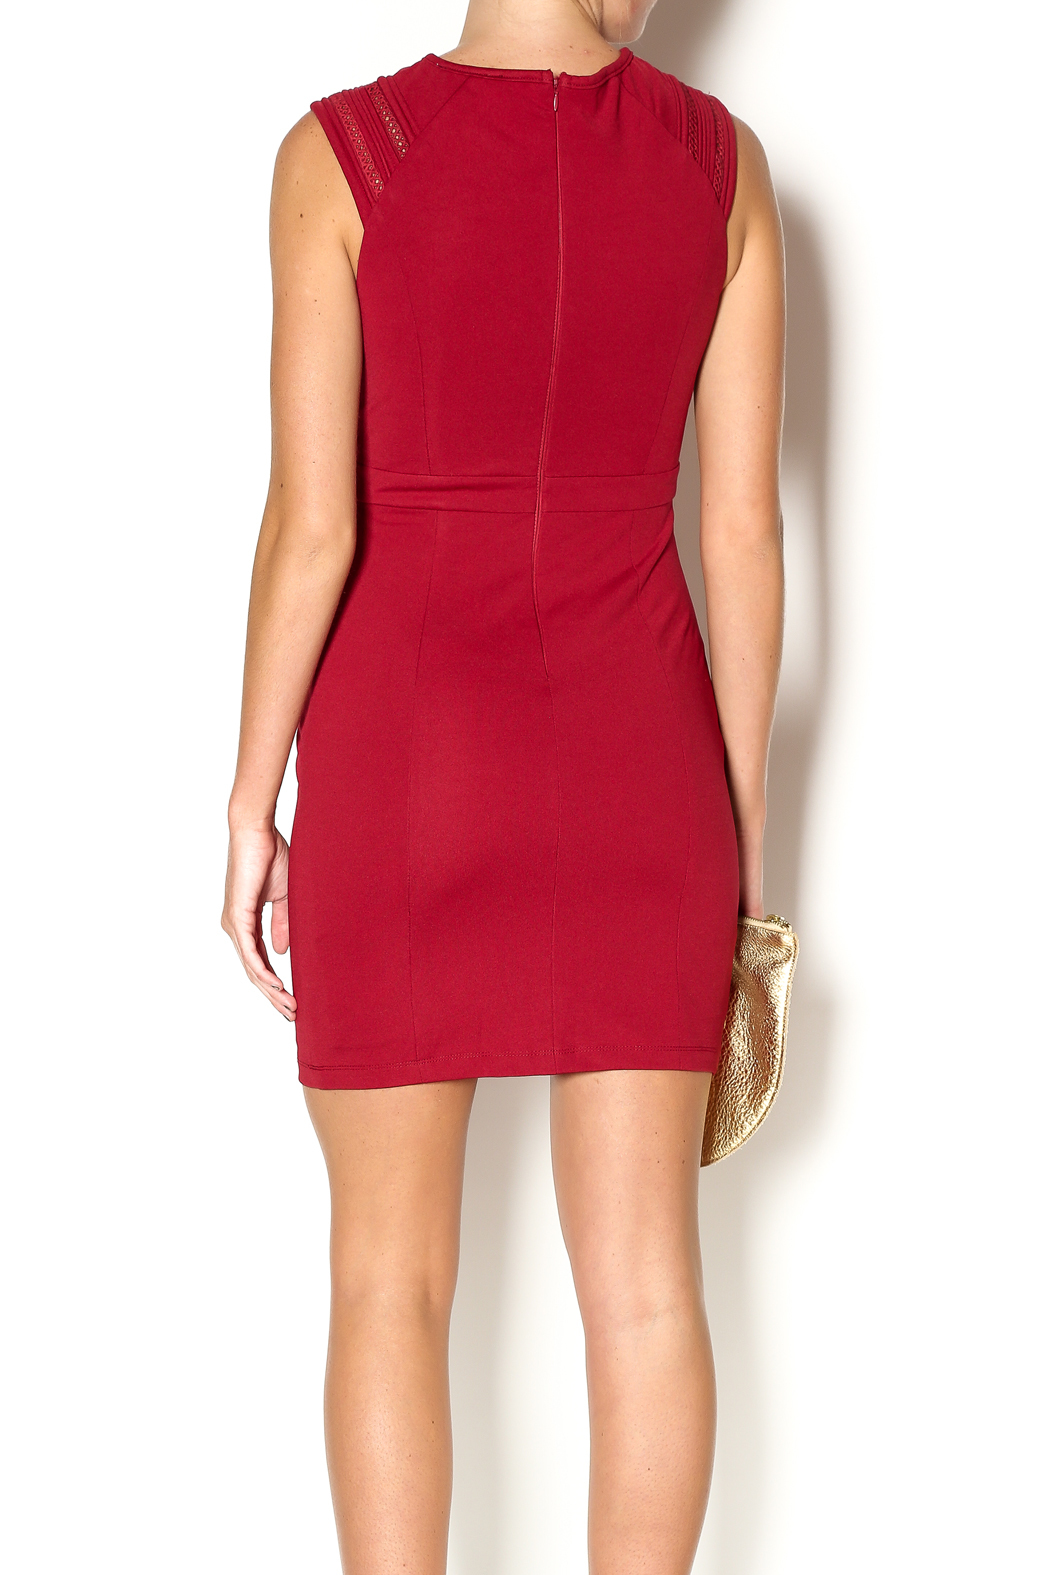 Abby & Taylor Burgundy Sleeveless Dress - Back Cropped Image